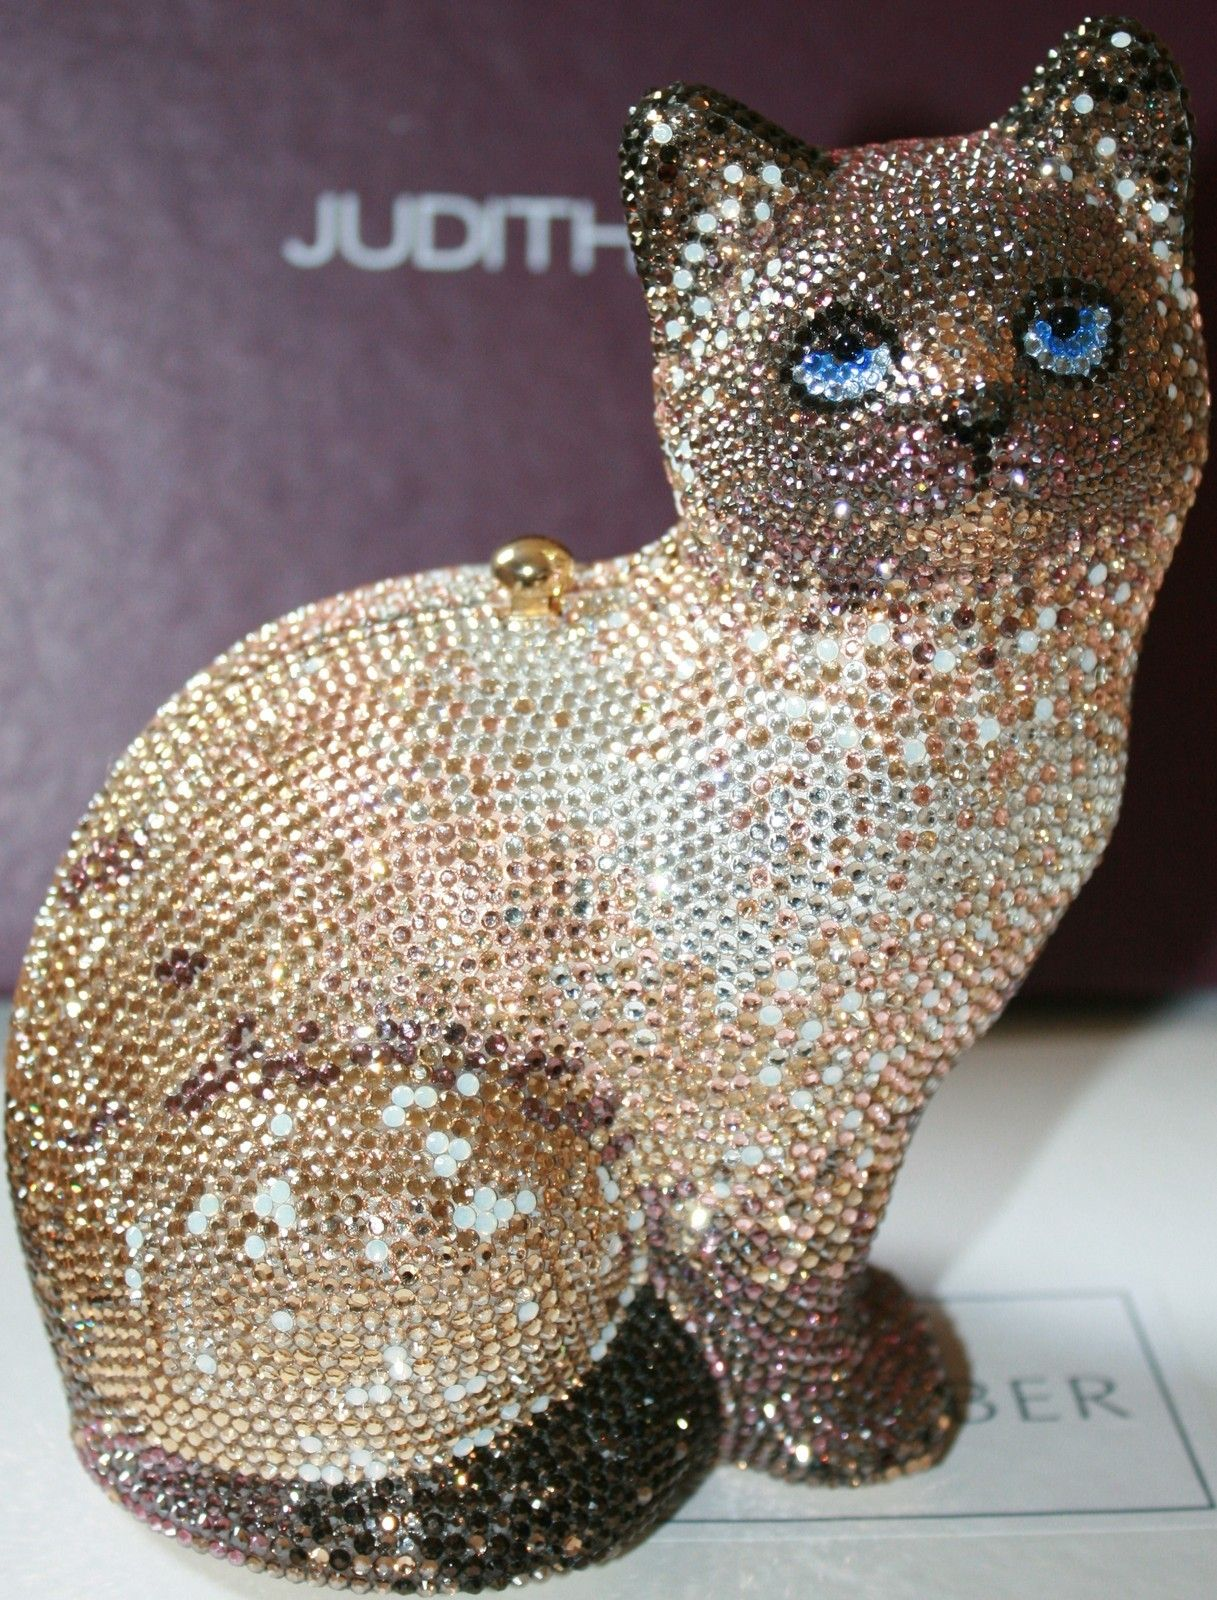 Judith Leiber Siamese Cat Kitten Tabitha Swarovski Crystals Handbag Bag Cats And Kittens Dinosaur Stuffed Animal Siamese Cats